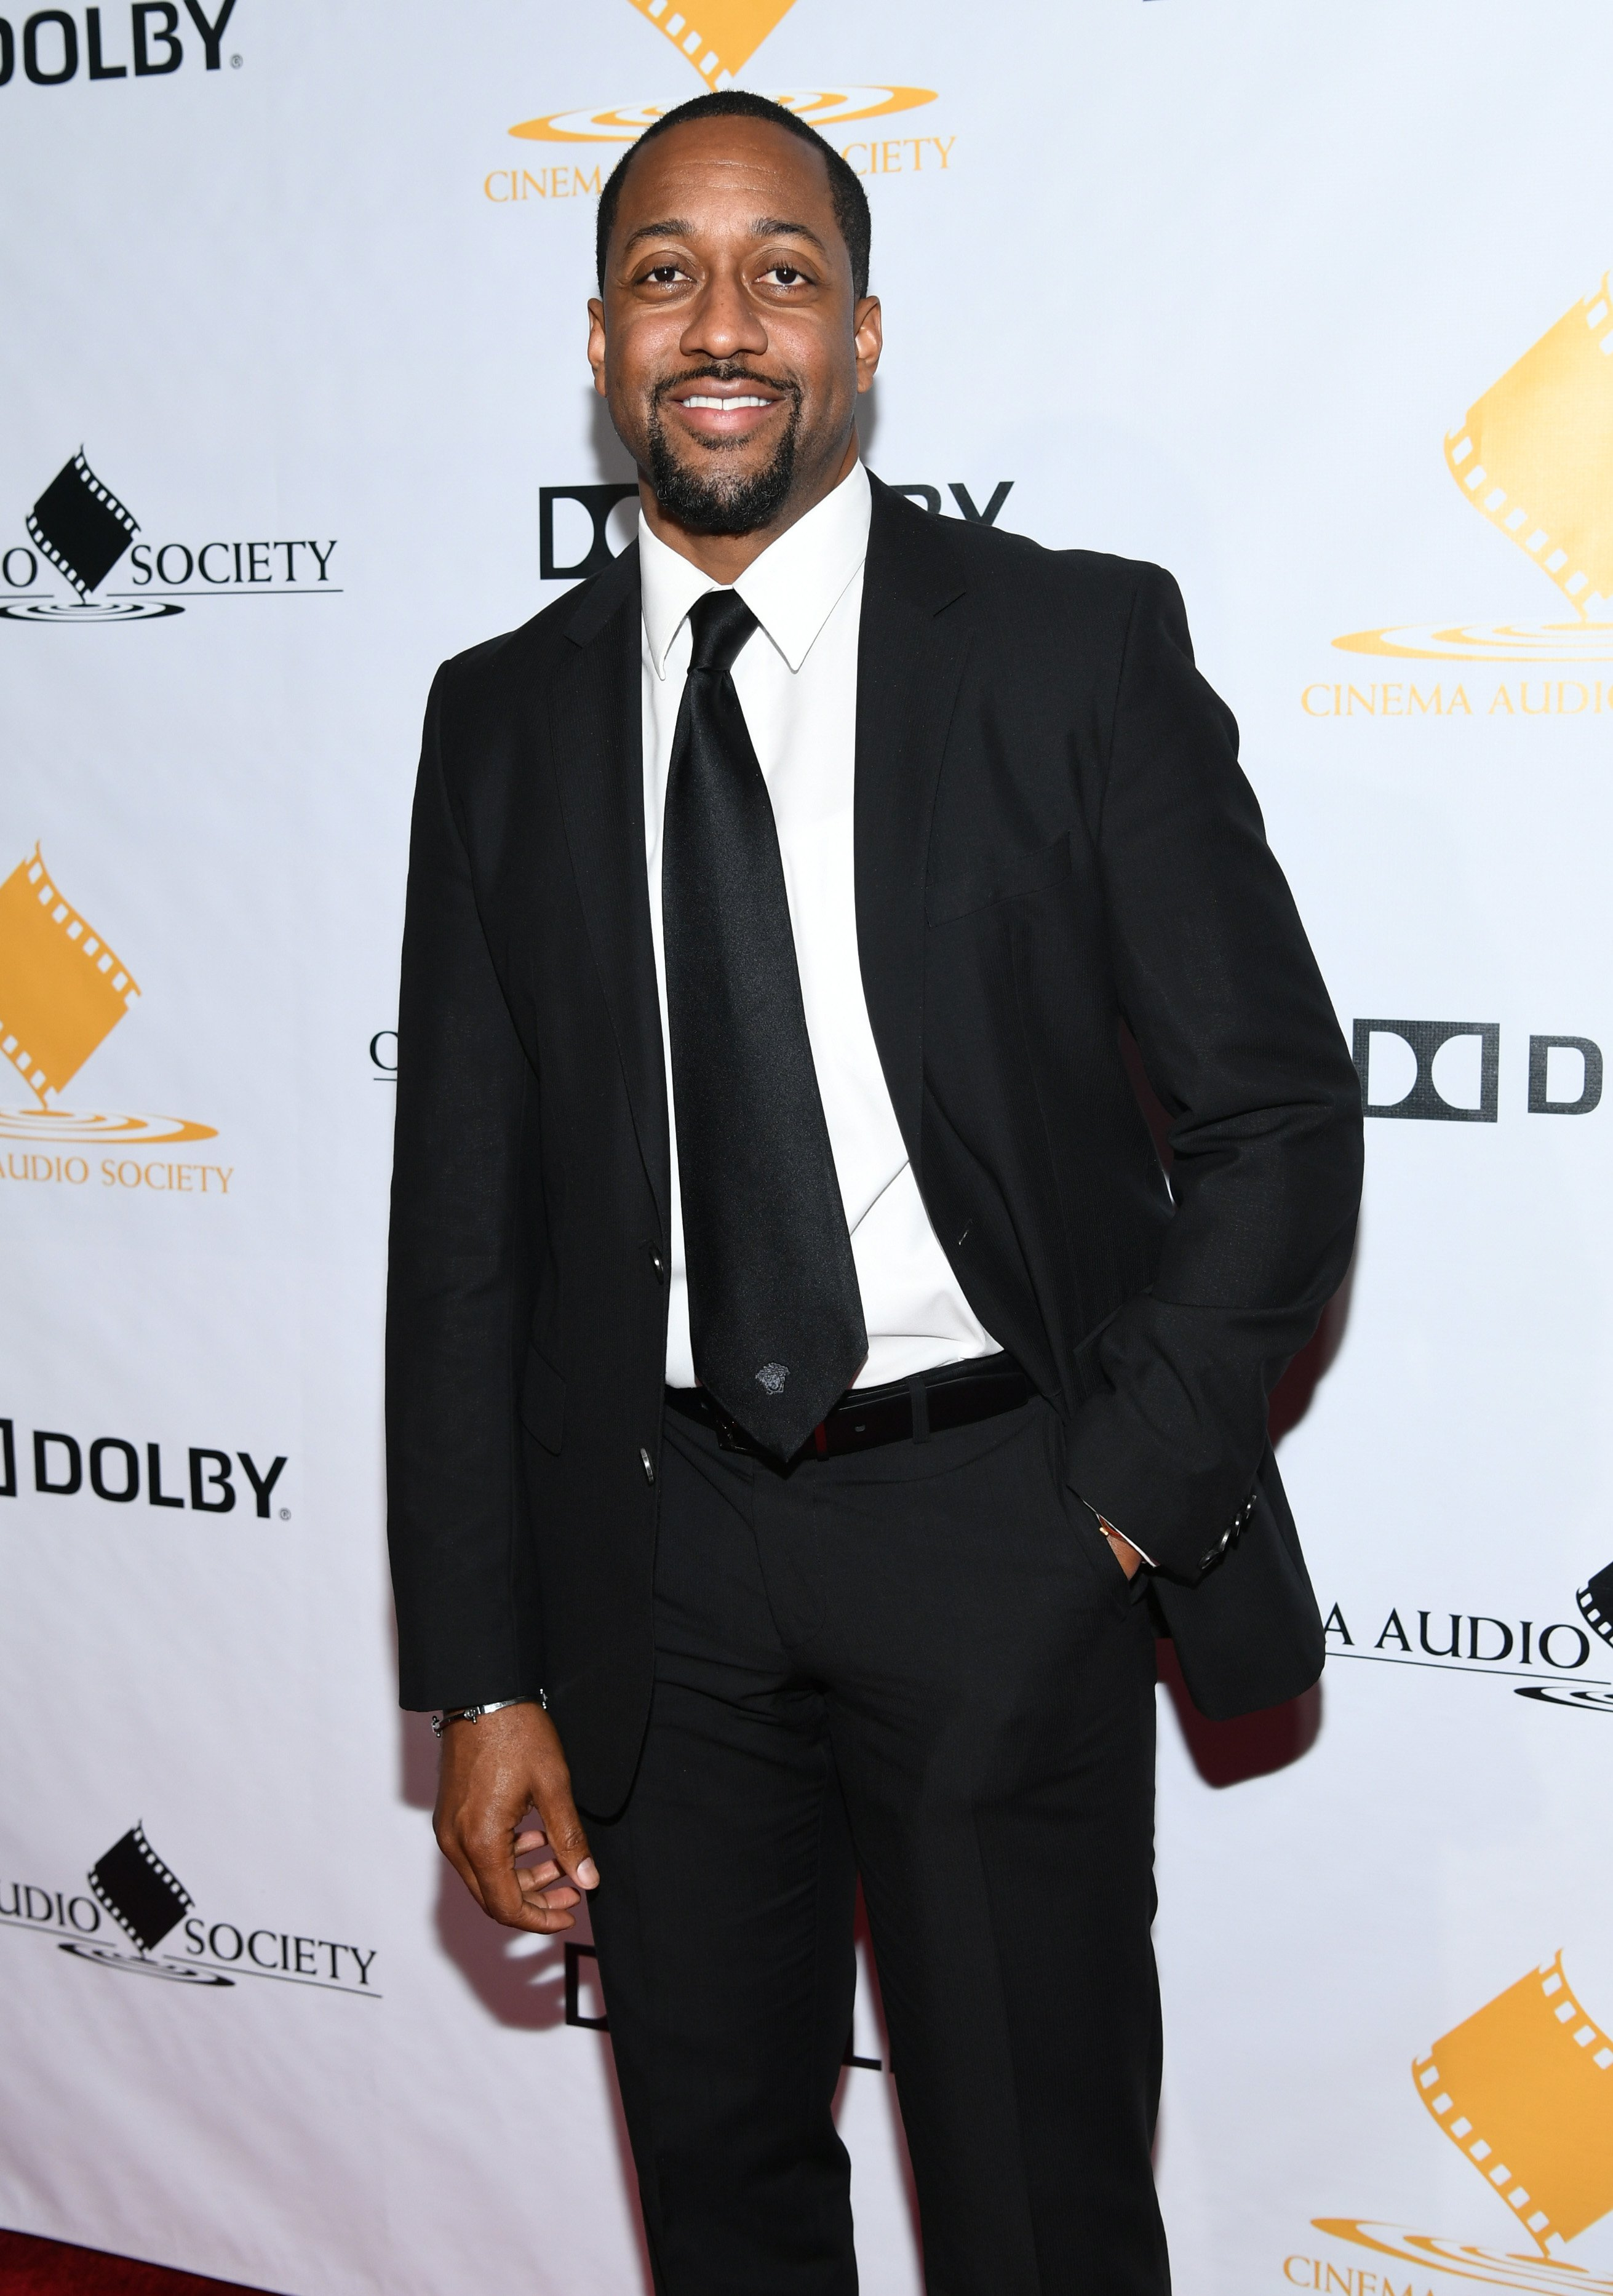 Jaleel White on February 24, 2018 in Los Angeles, California | Photo: Getty Images/Global Images Ukraine